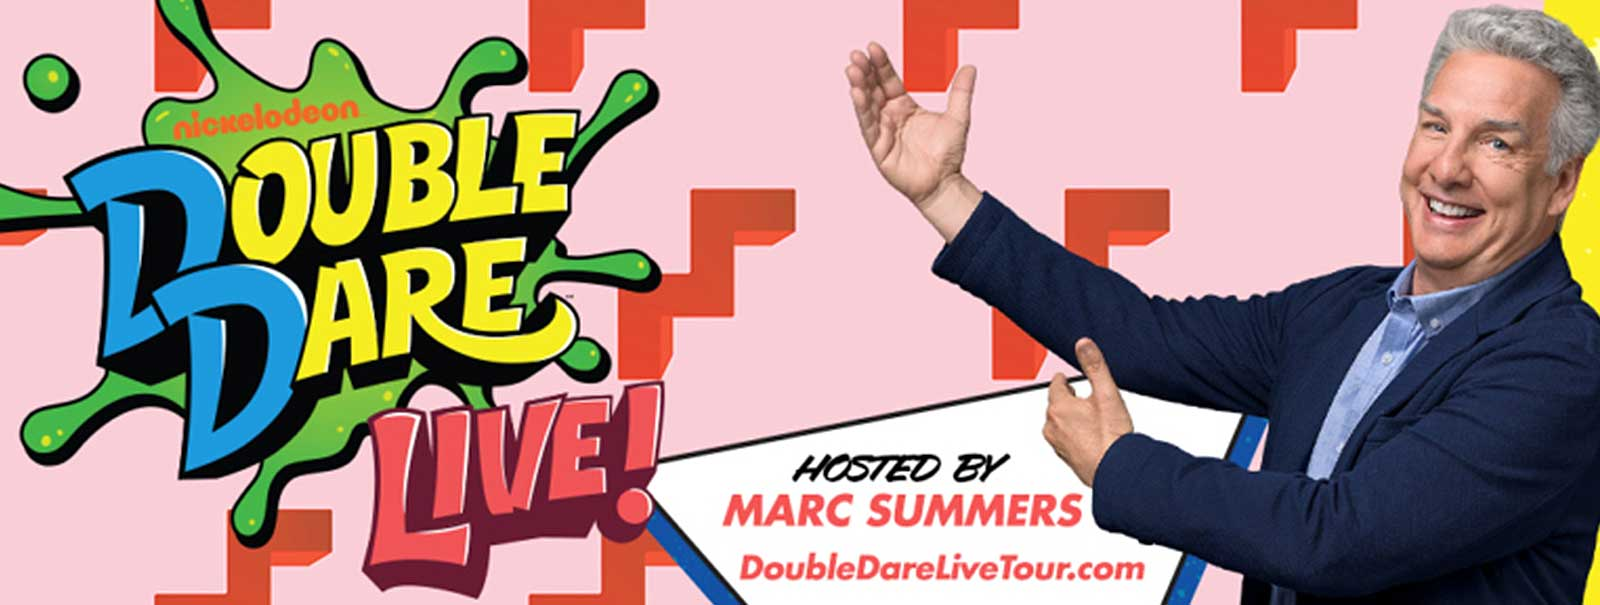 More Info - Double Dare LIVE! hosted by Marc Summers